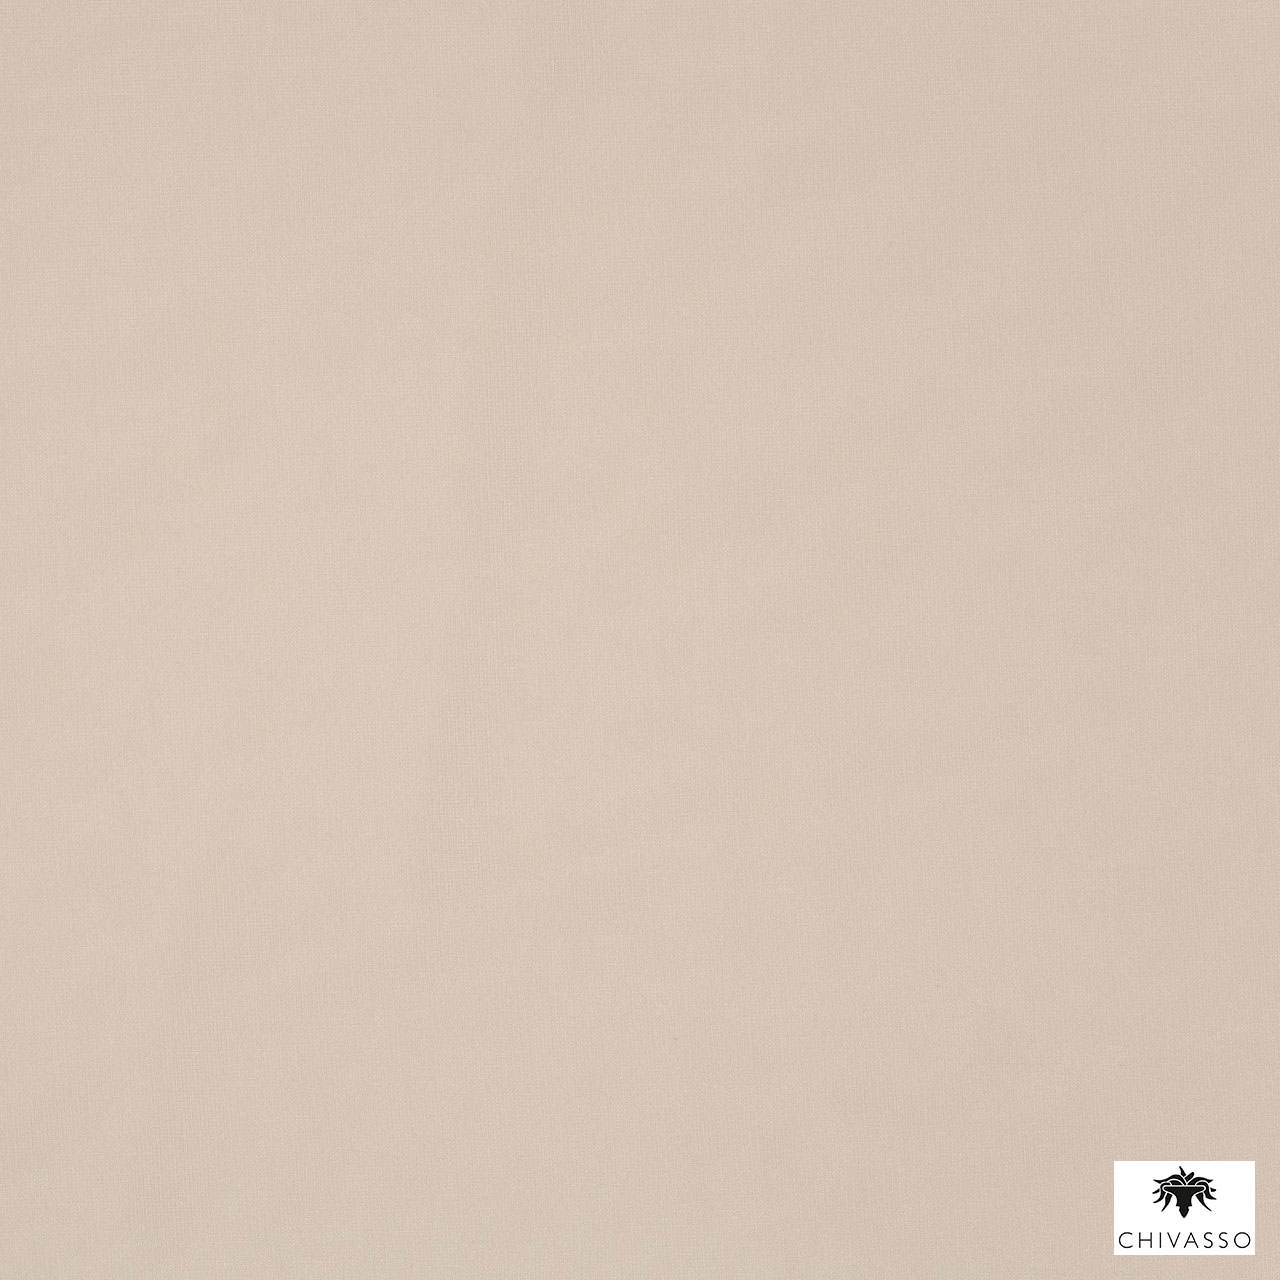 Chivasso - Lush - Ch2818 - 072  | Curtain Fabric - Beige, Plain, Synthetic, Domestic Use, Wide Width